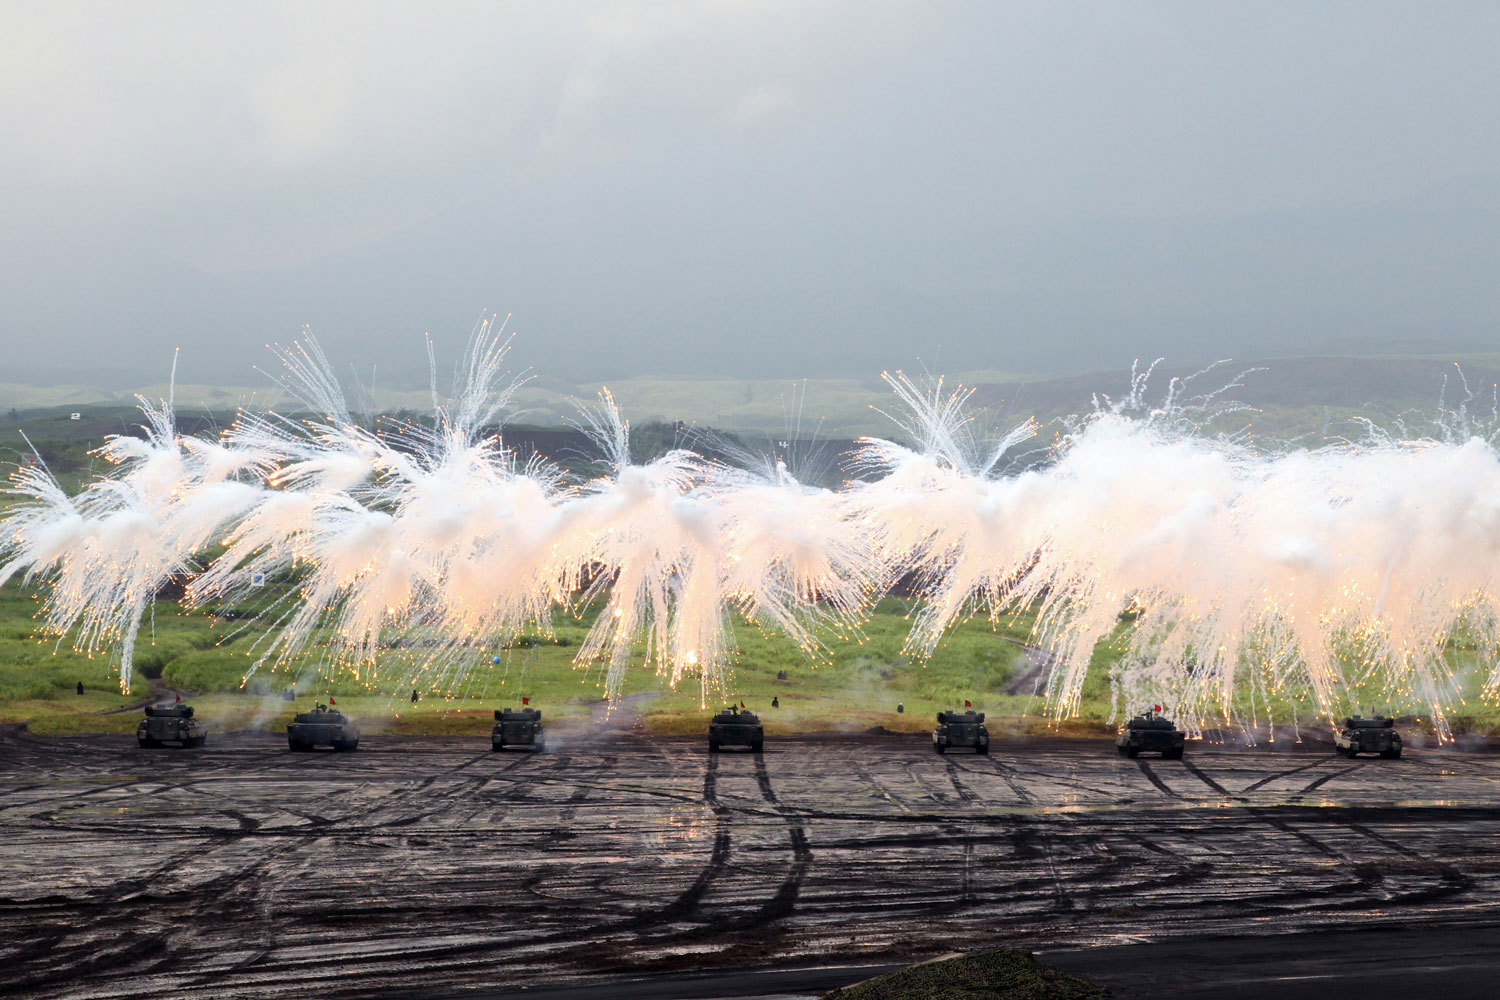 August 23, 2011. Japan Ground Self-Defense Force armed tanks fire during a fire exercise at the foot of the Mount Fuji in Gotenba, Japan. About 2,400 Ground Self-Defense personnel, 80 armed truck and tanks took part in the exercise.